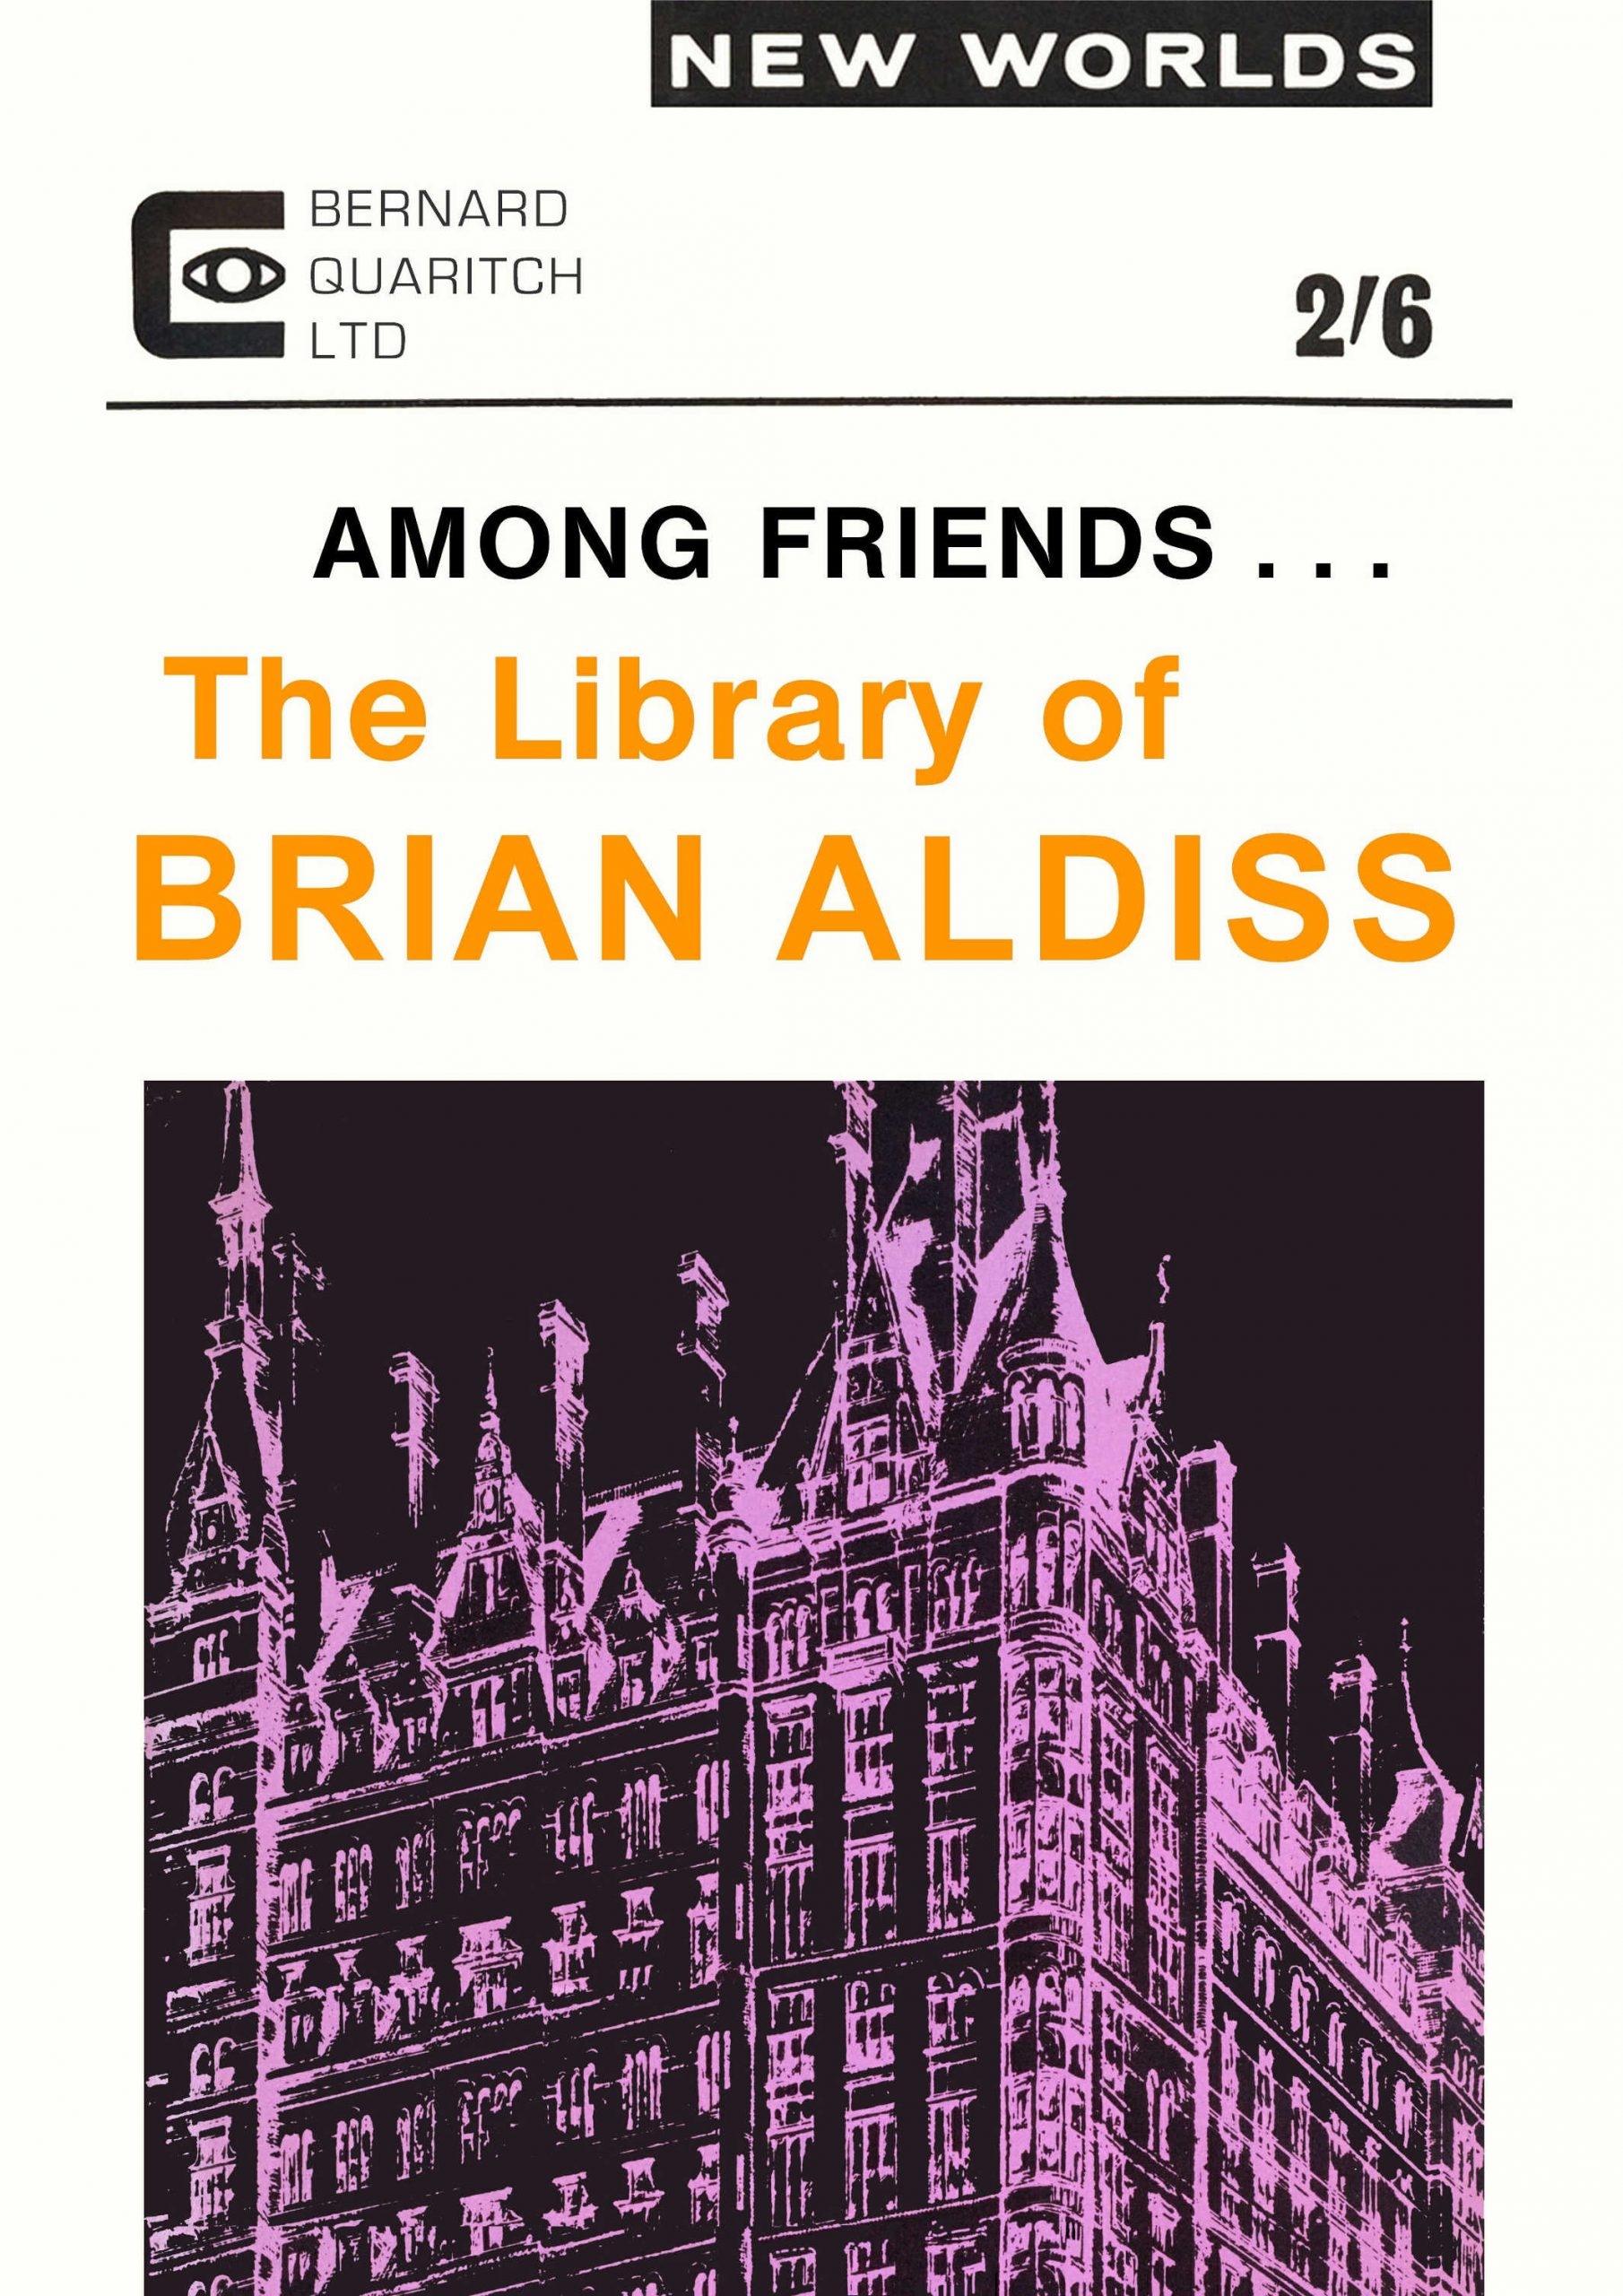 The Library of Brian Aldiss